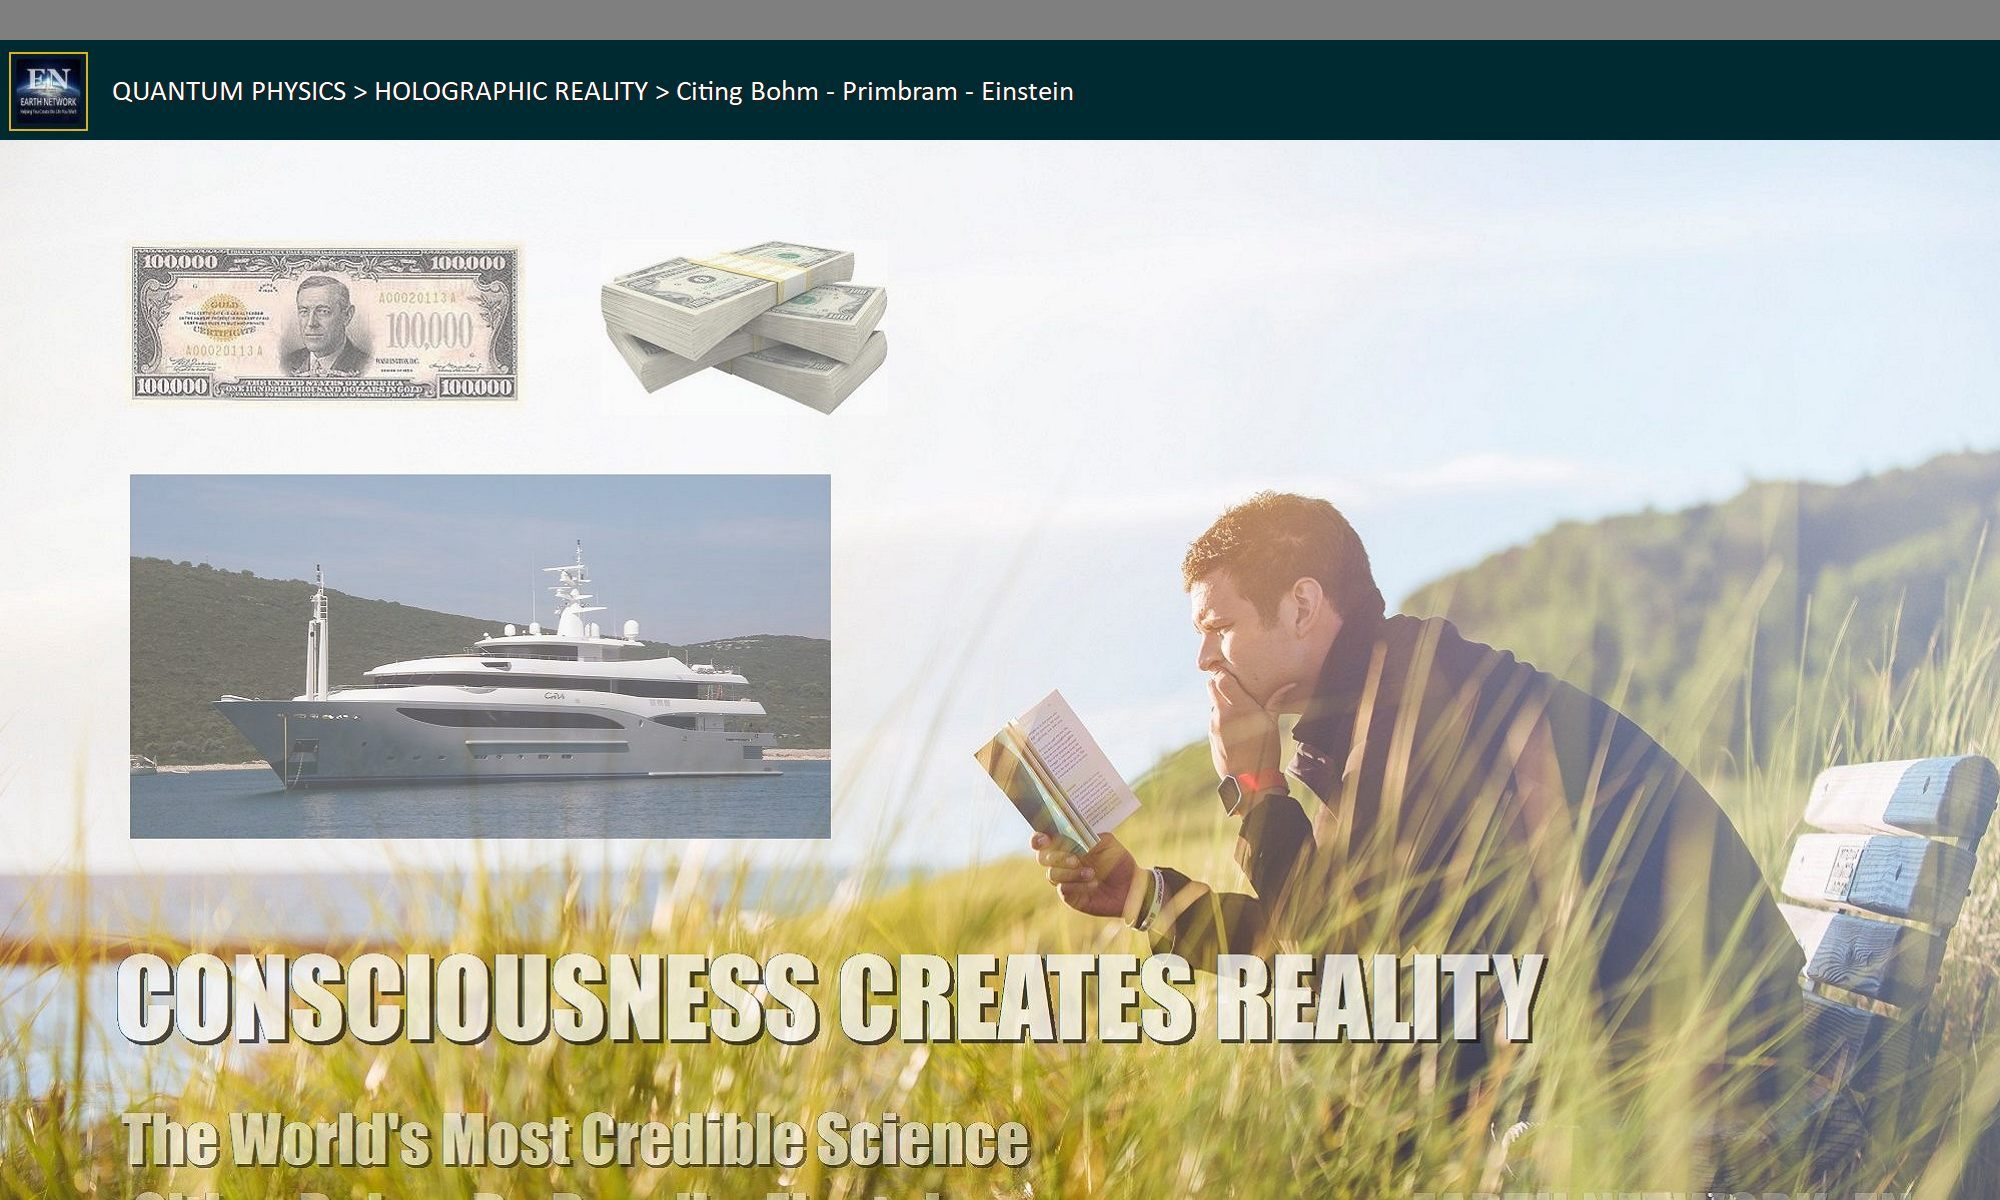 Man with book manifesting yacht and money